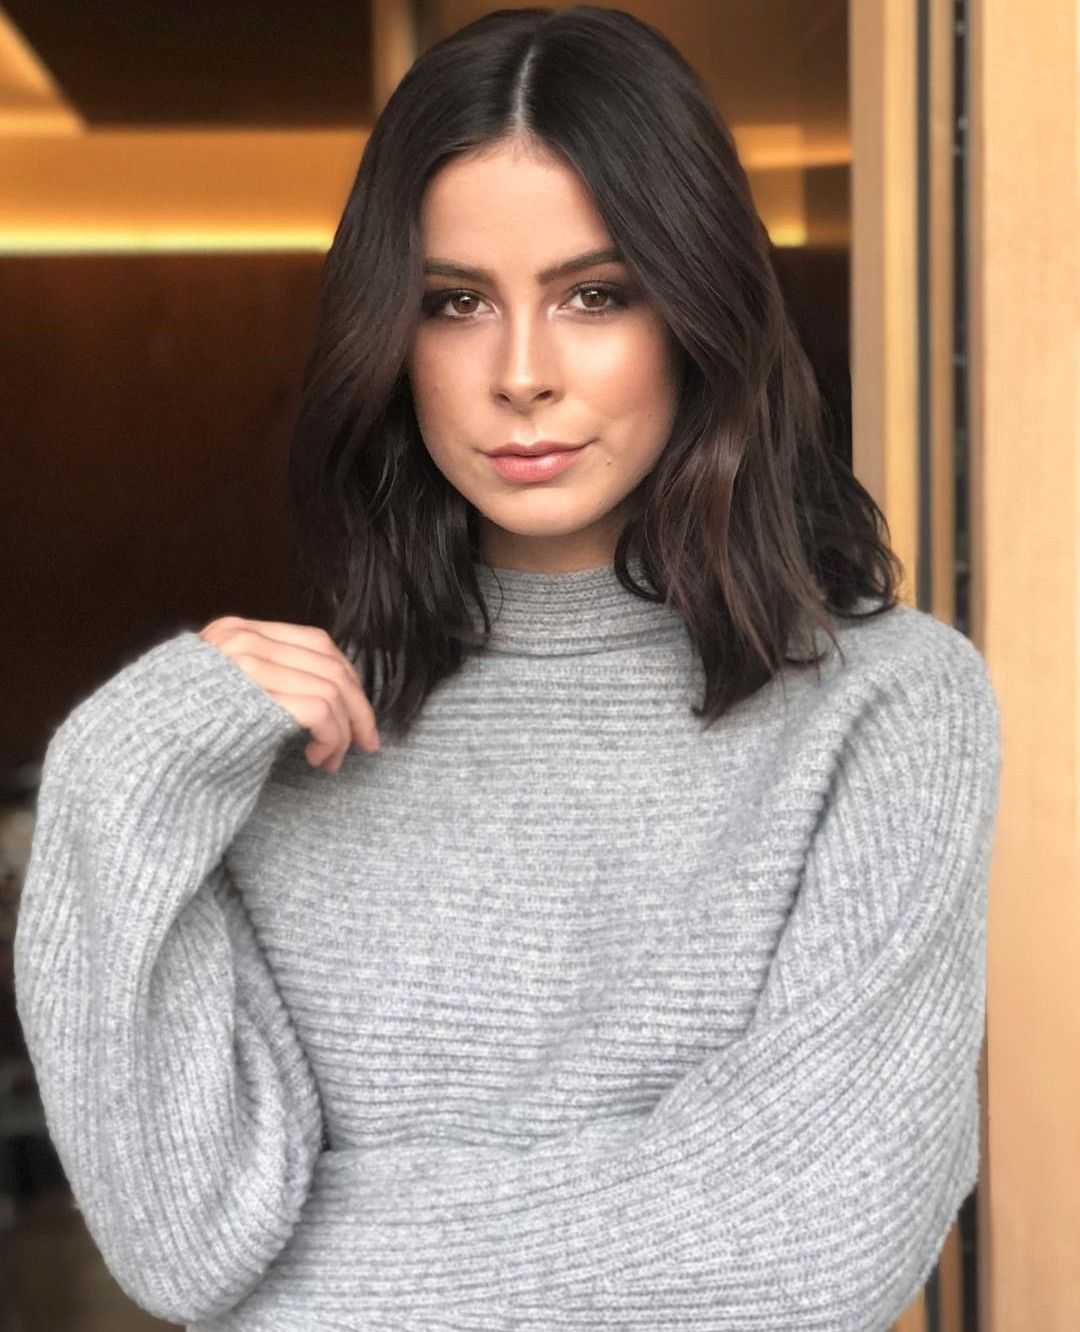 Lena Meyer Landrut Lena In 2019 Pinterest Celebrities